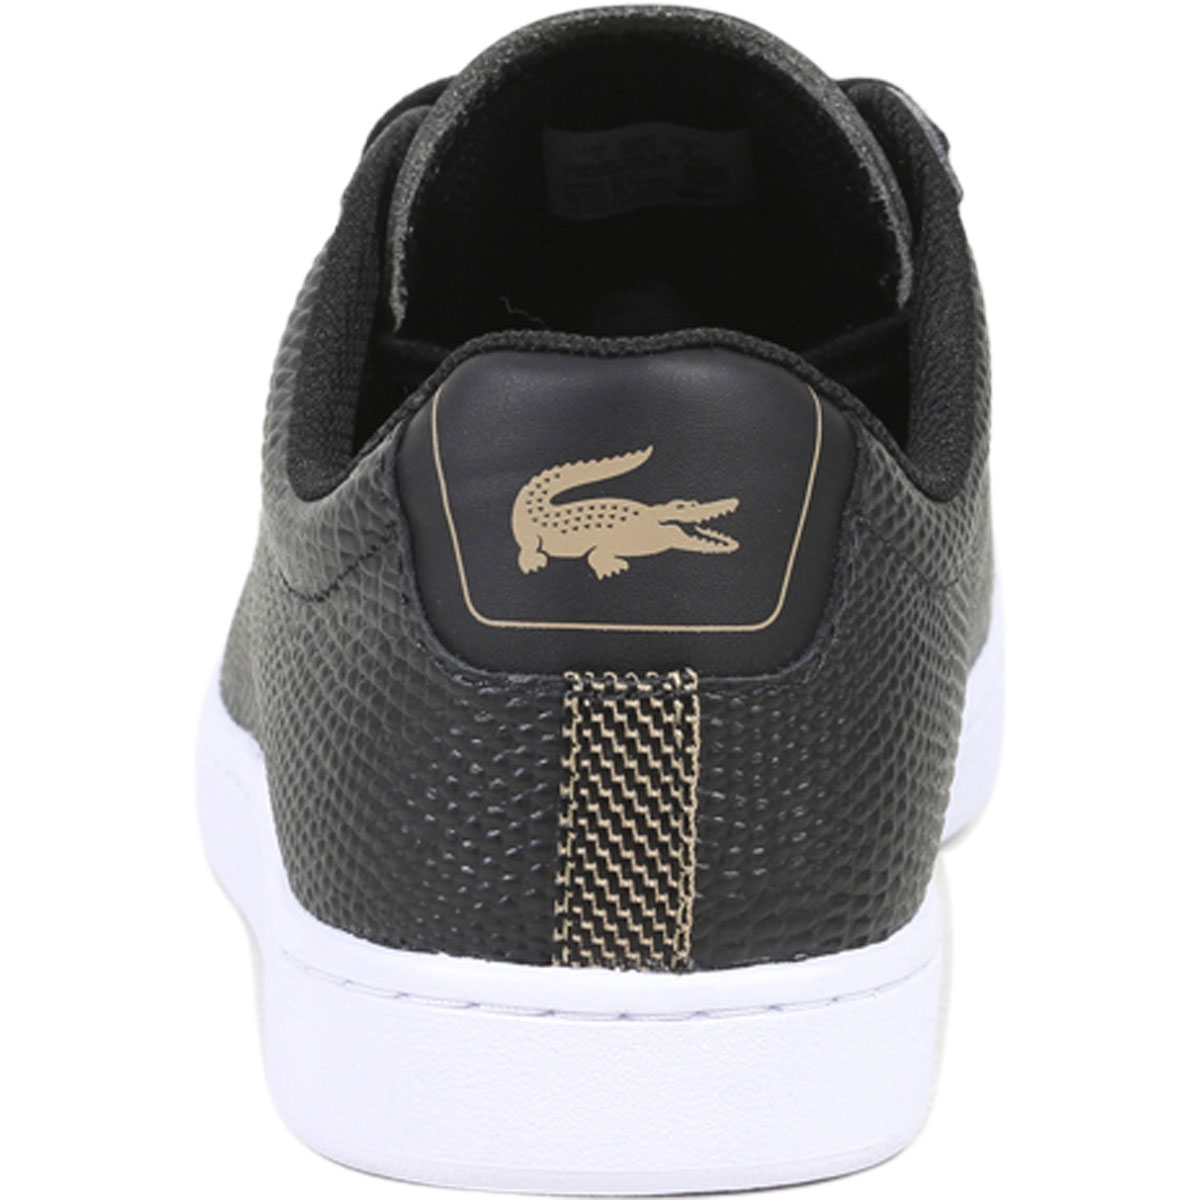 Lacoste-Men-039-s-Carnaby-EVO-118-Trainers-Sneakers-Shoes thumbnail 11